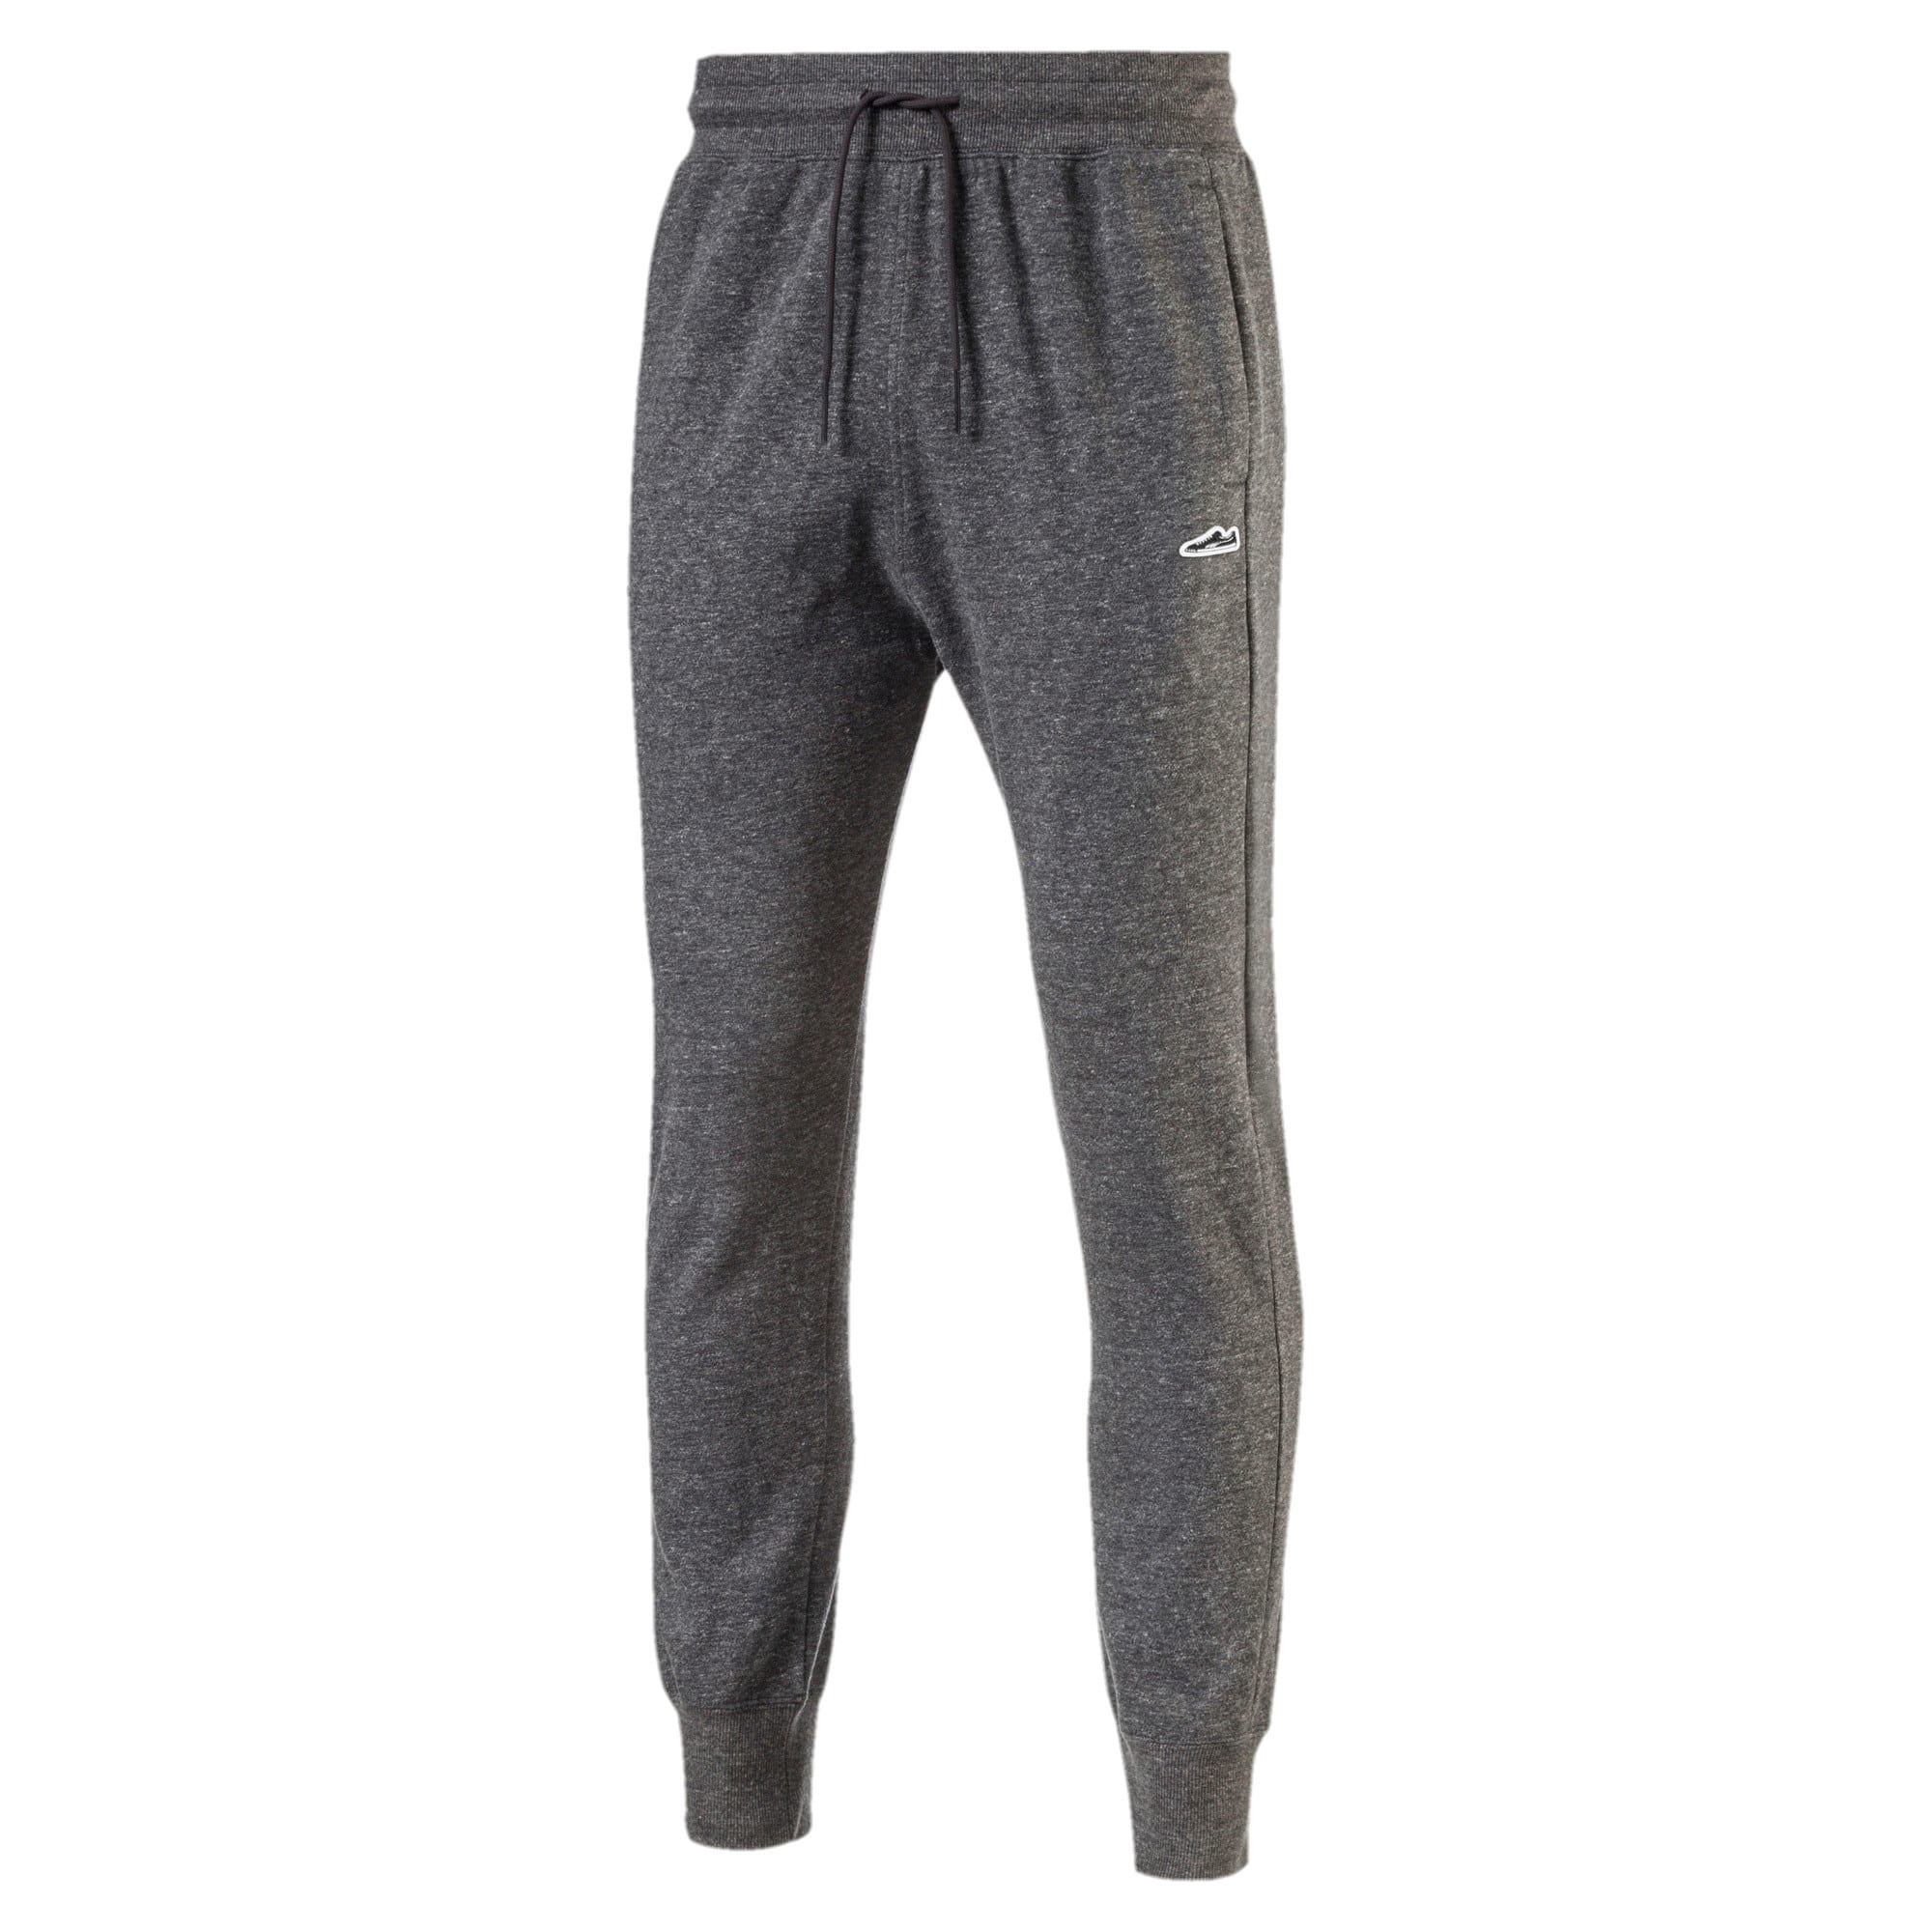 Thumbnail 3 of Men's Suede T7 Fleece Sweatpants, Puma Black Heather, medium-IND